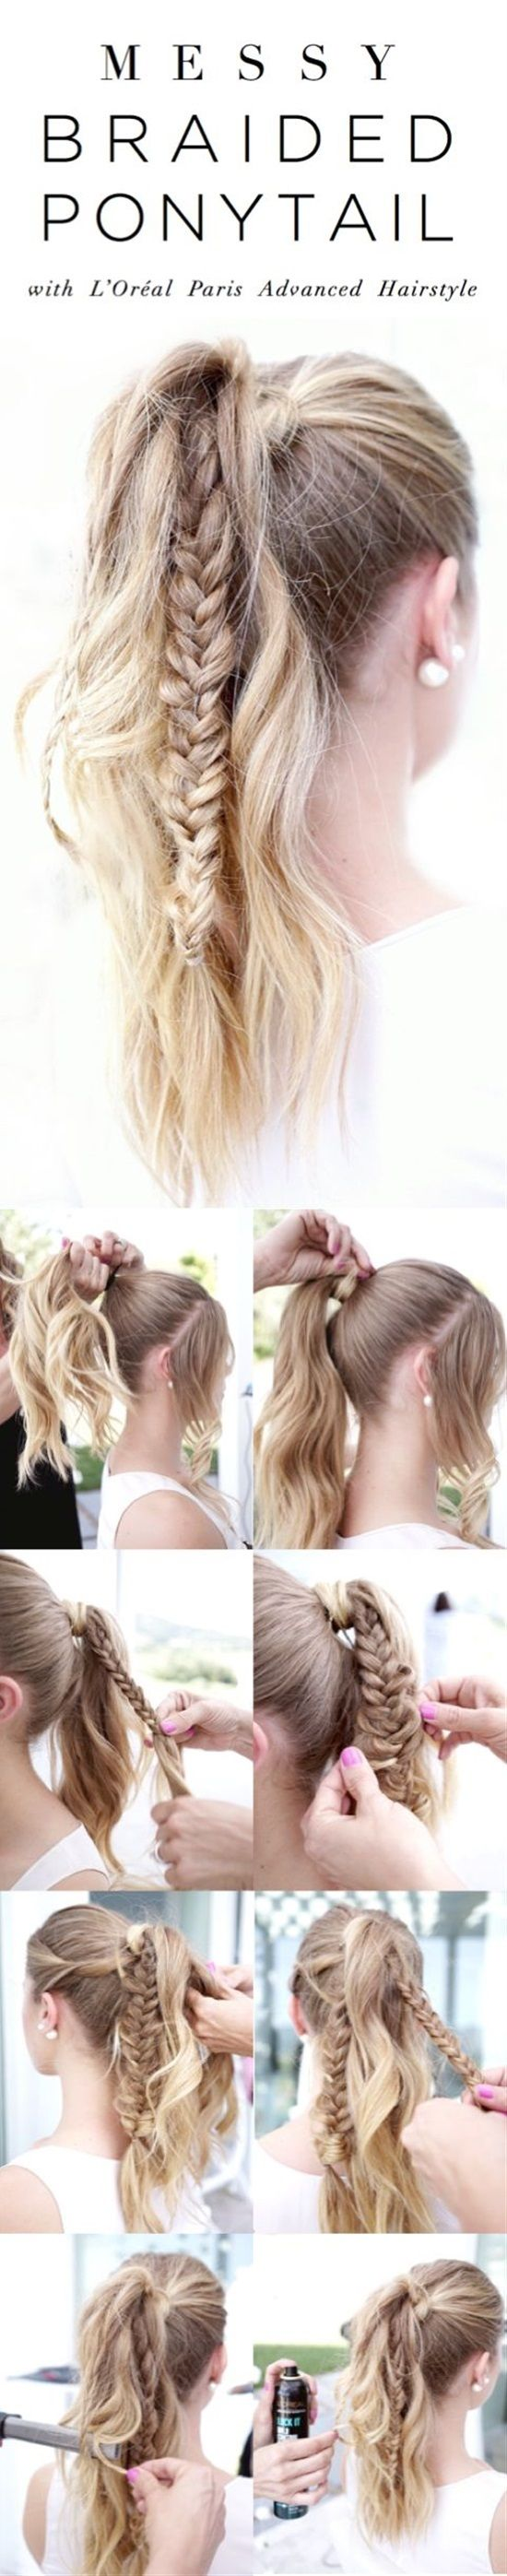 14 Bold & Unique Hairstyle Tutorials You Can Do At Home | Braided ponytail, Hair styles, Long ...